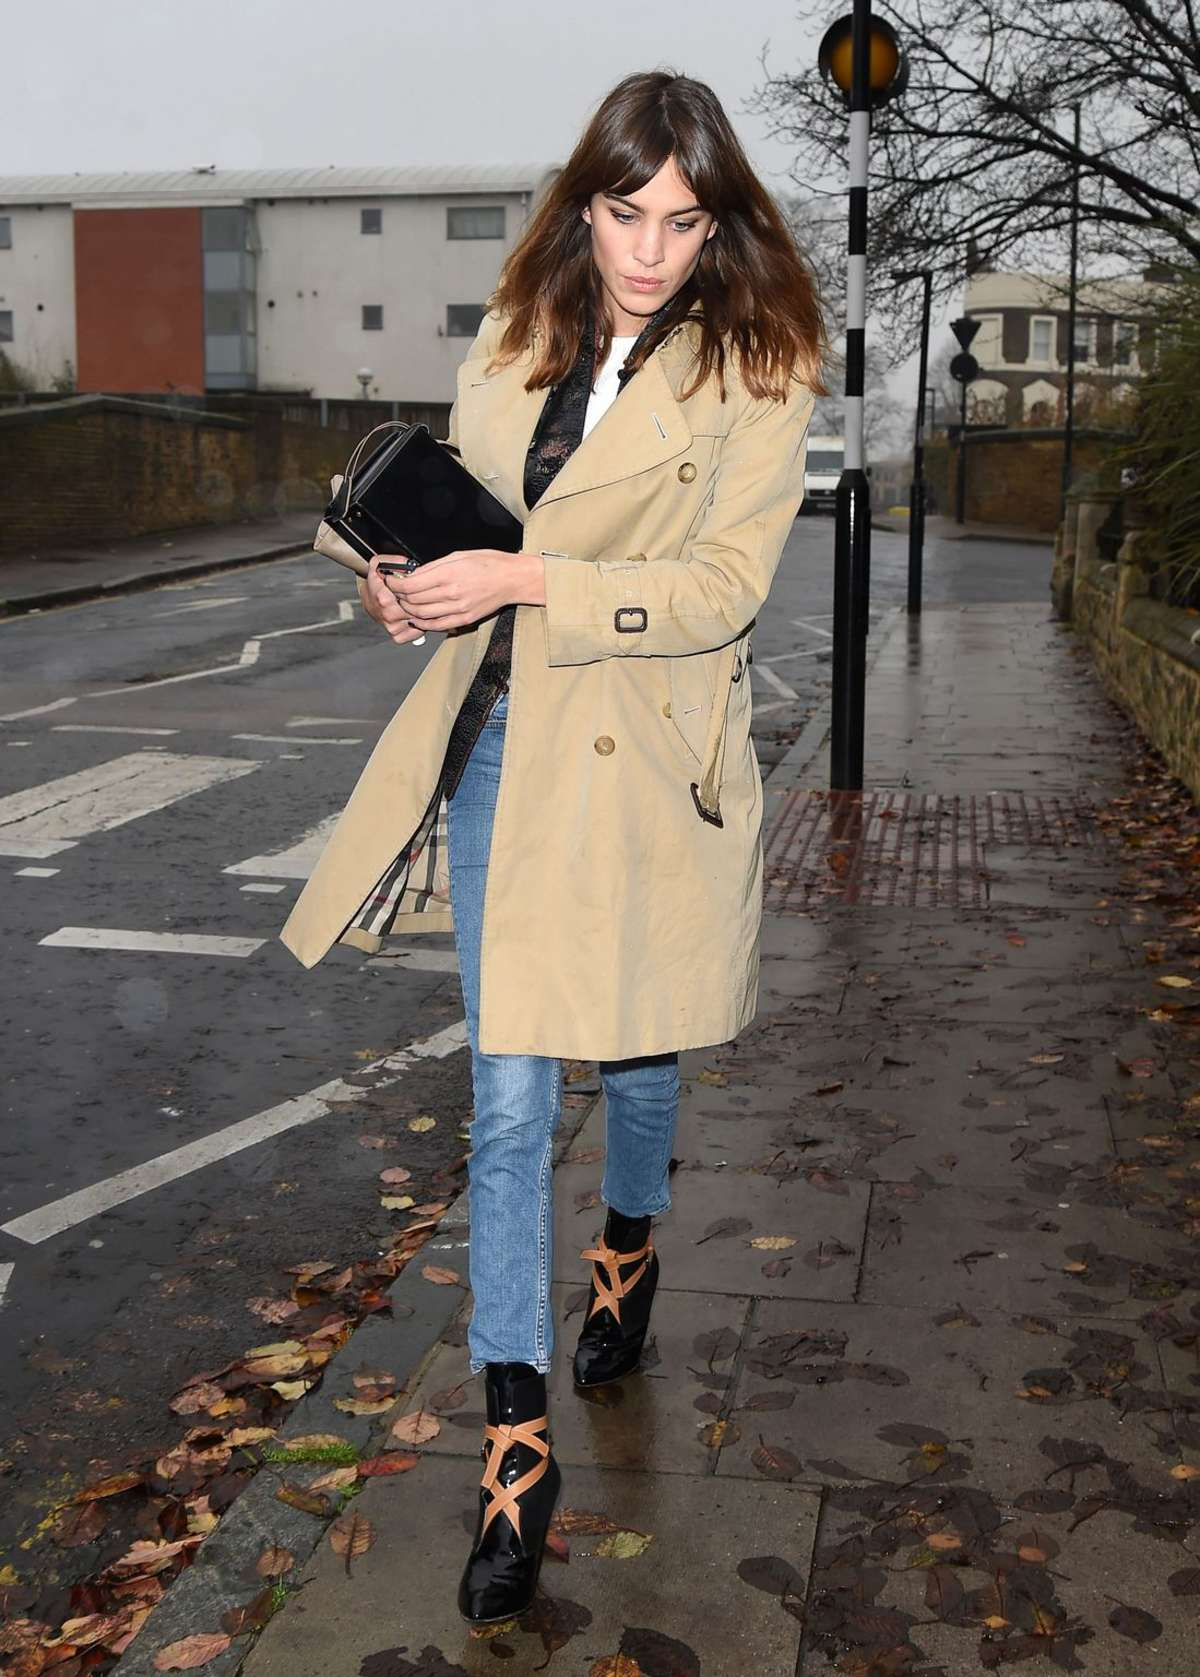 Alexa Chung in Jeans and Coat out in London